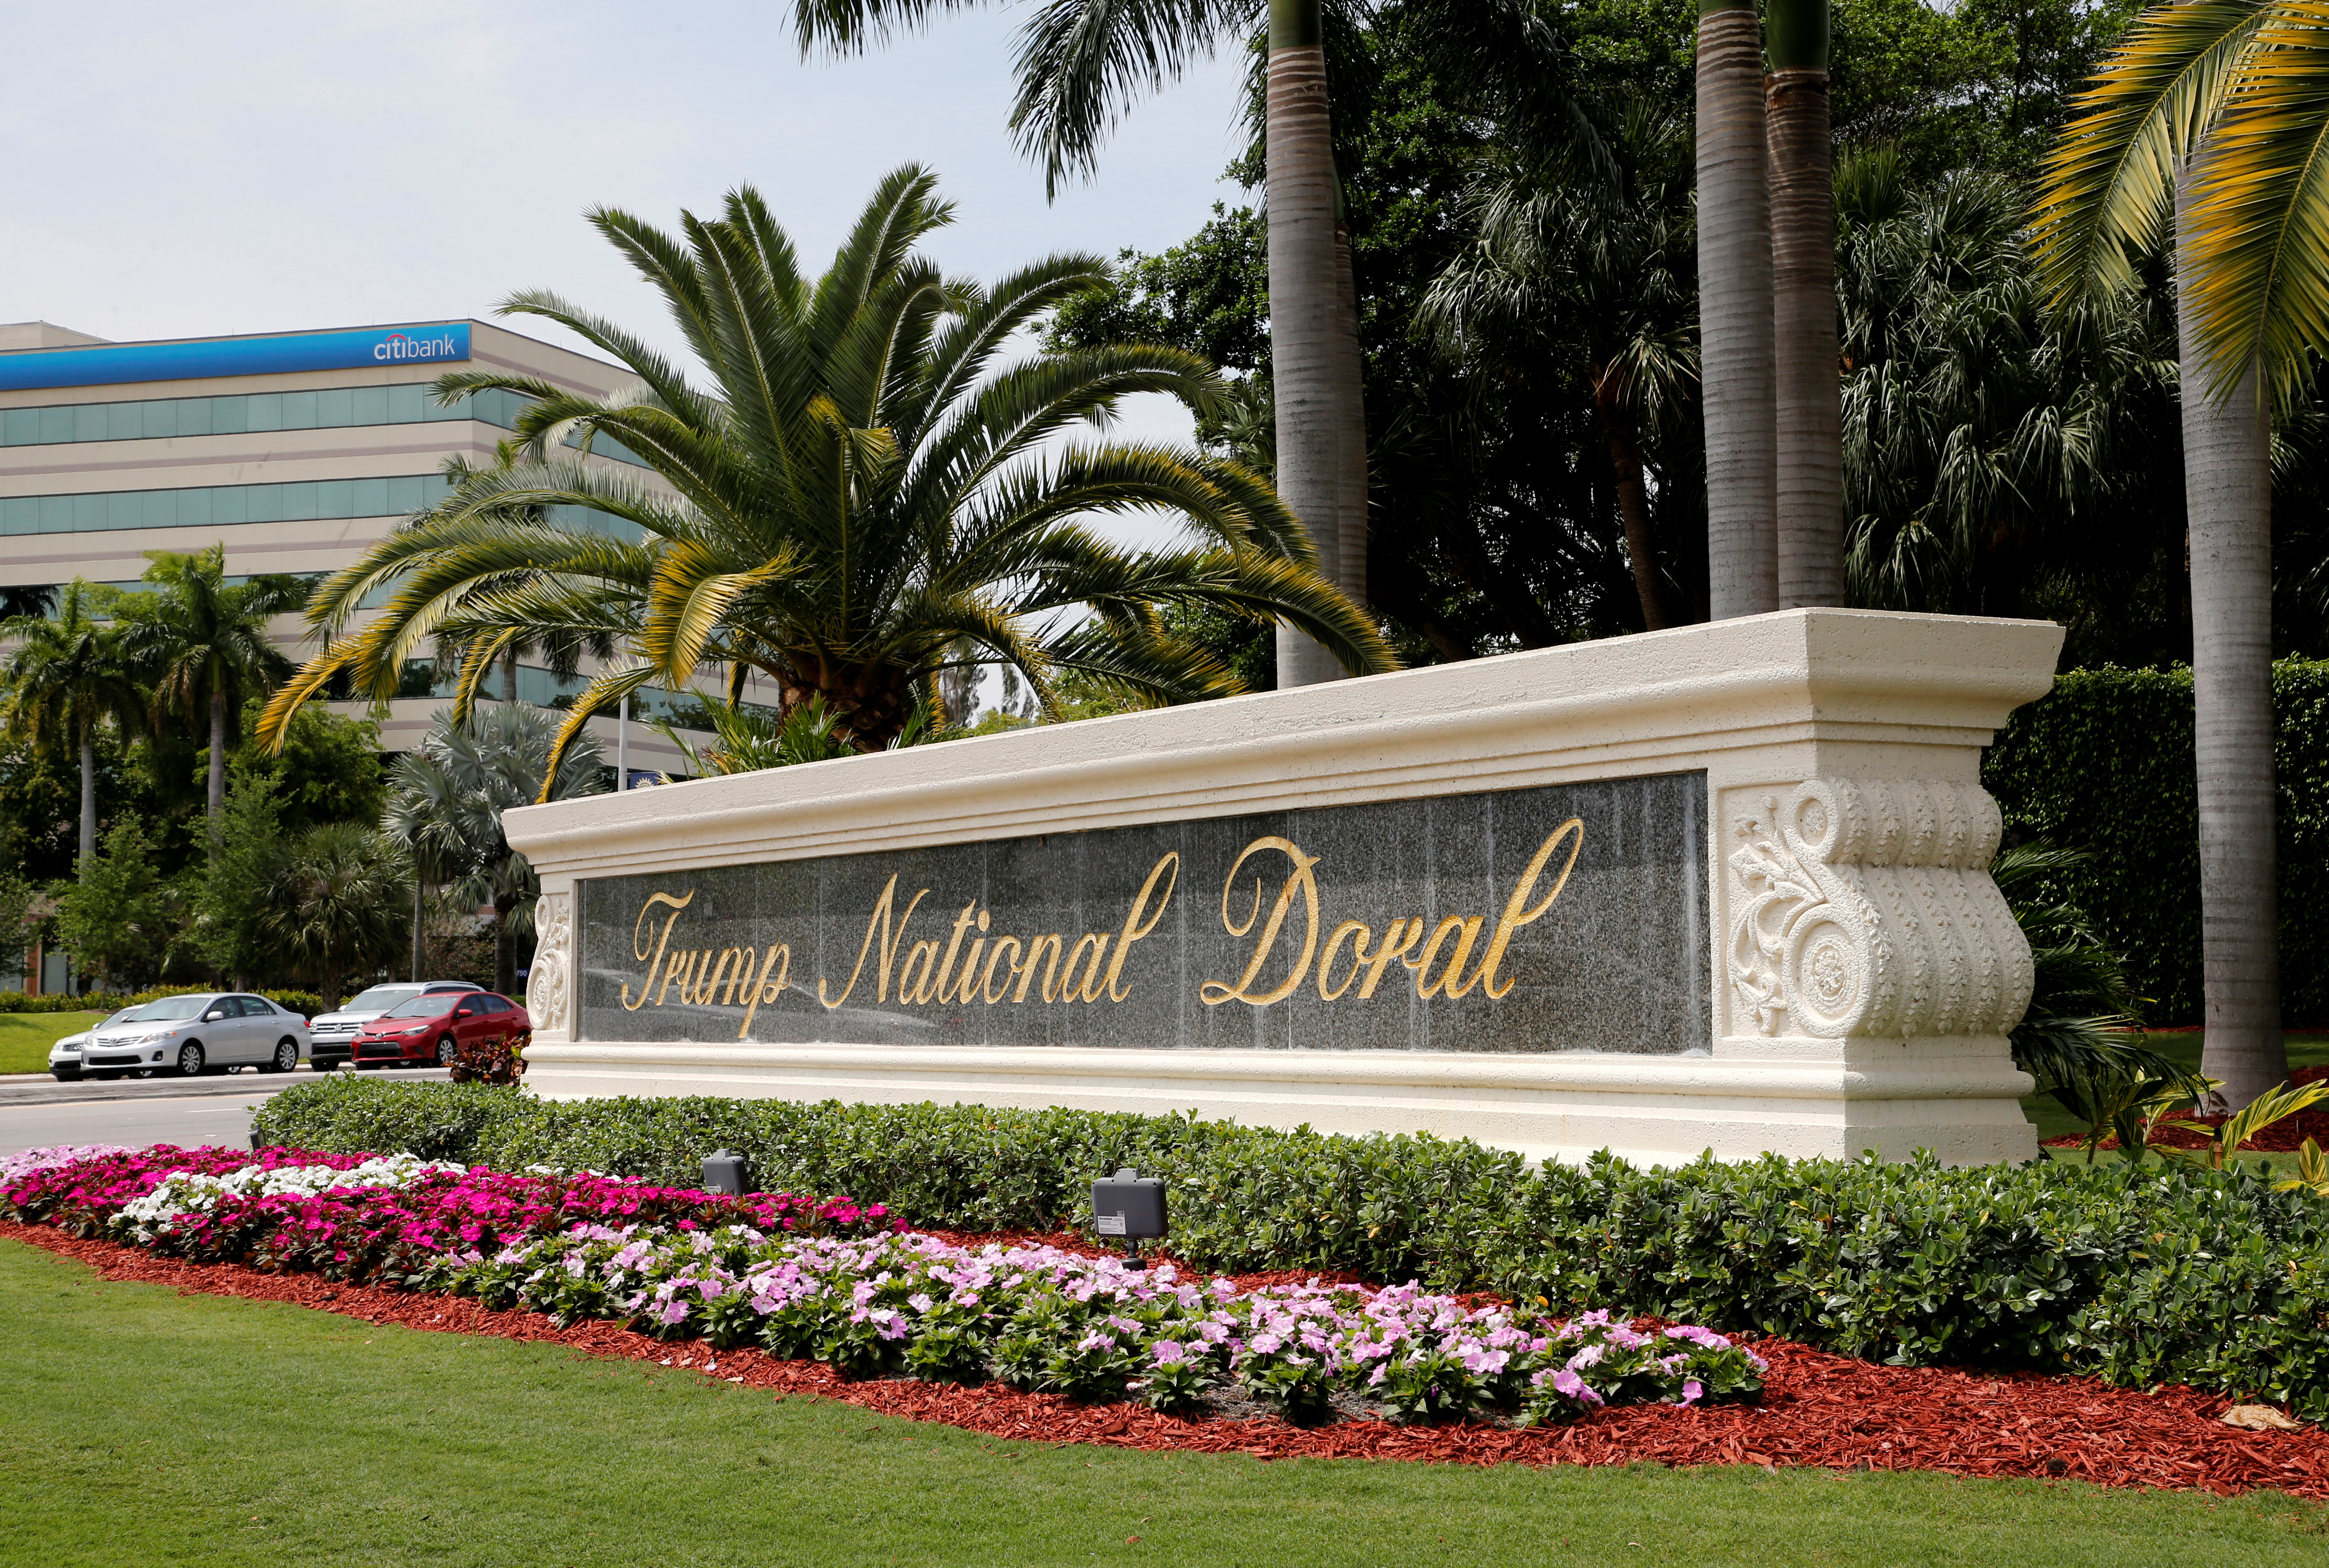 Trump to host G7 summit at his Florida golf resort, sparking criticism